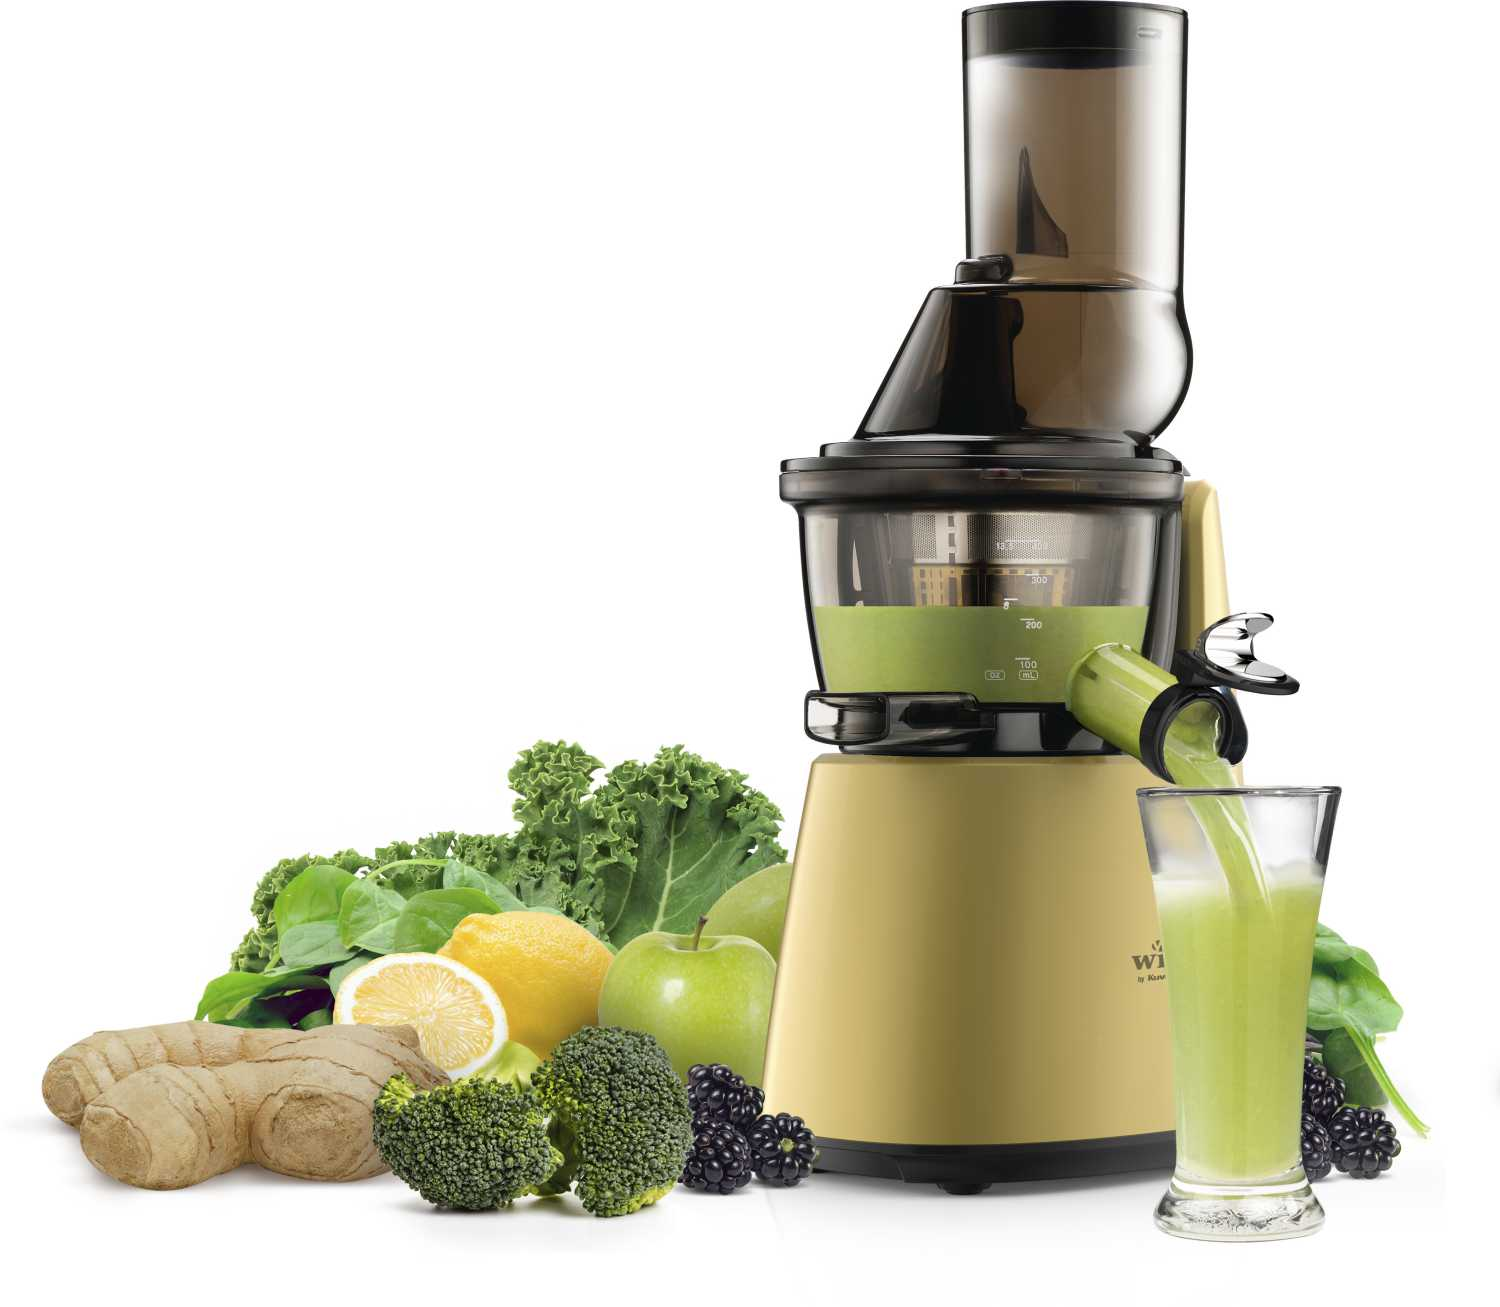 Witt by Kuvings Slowjuicer C9600 Gold